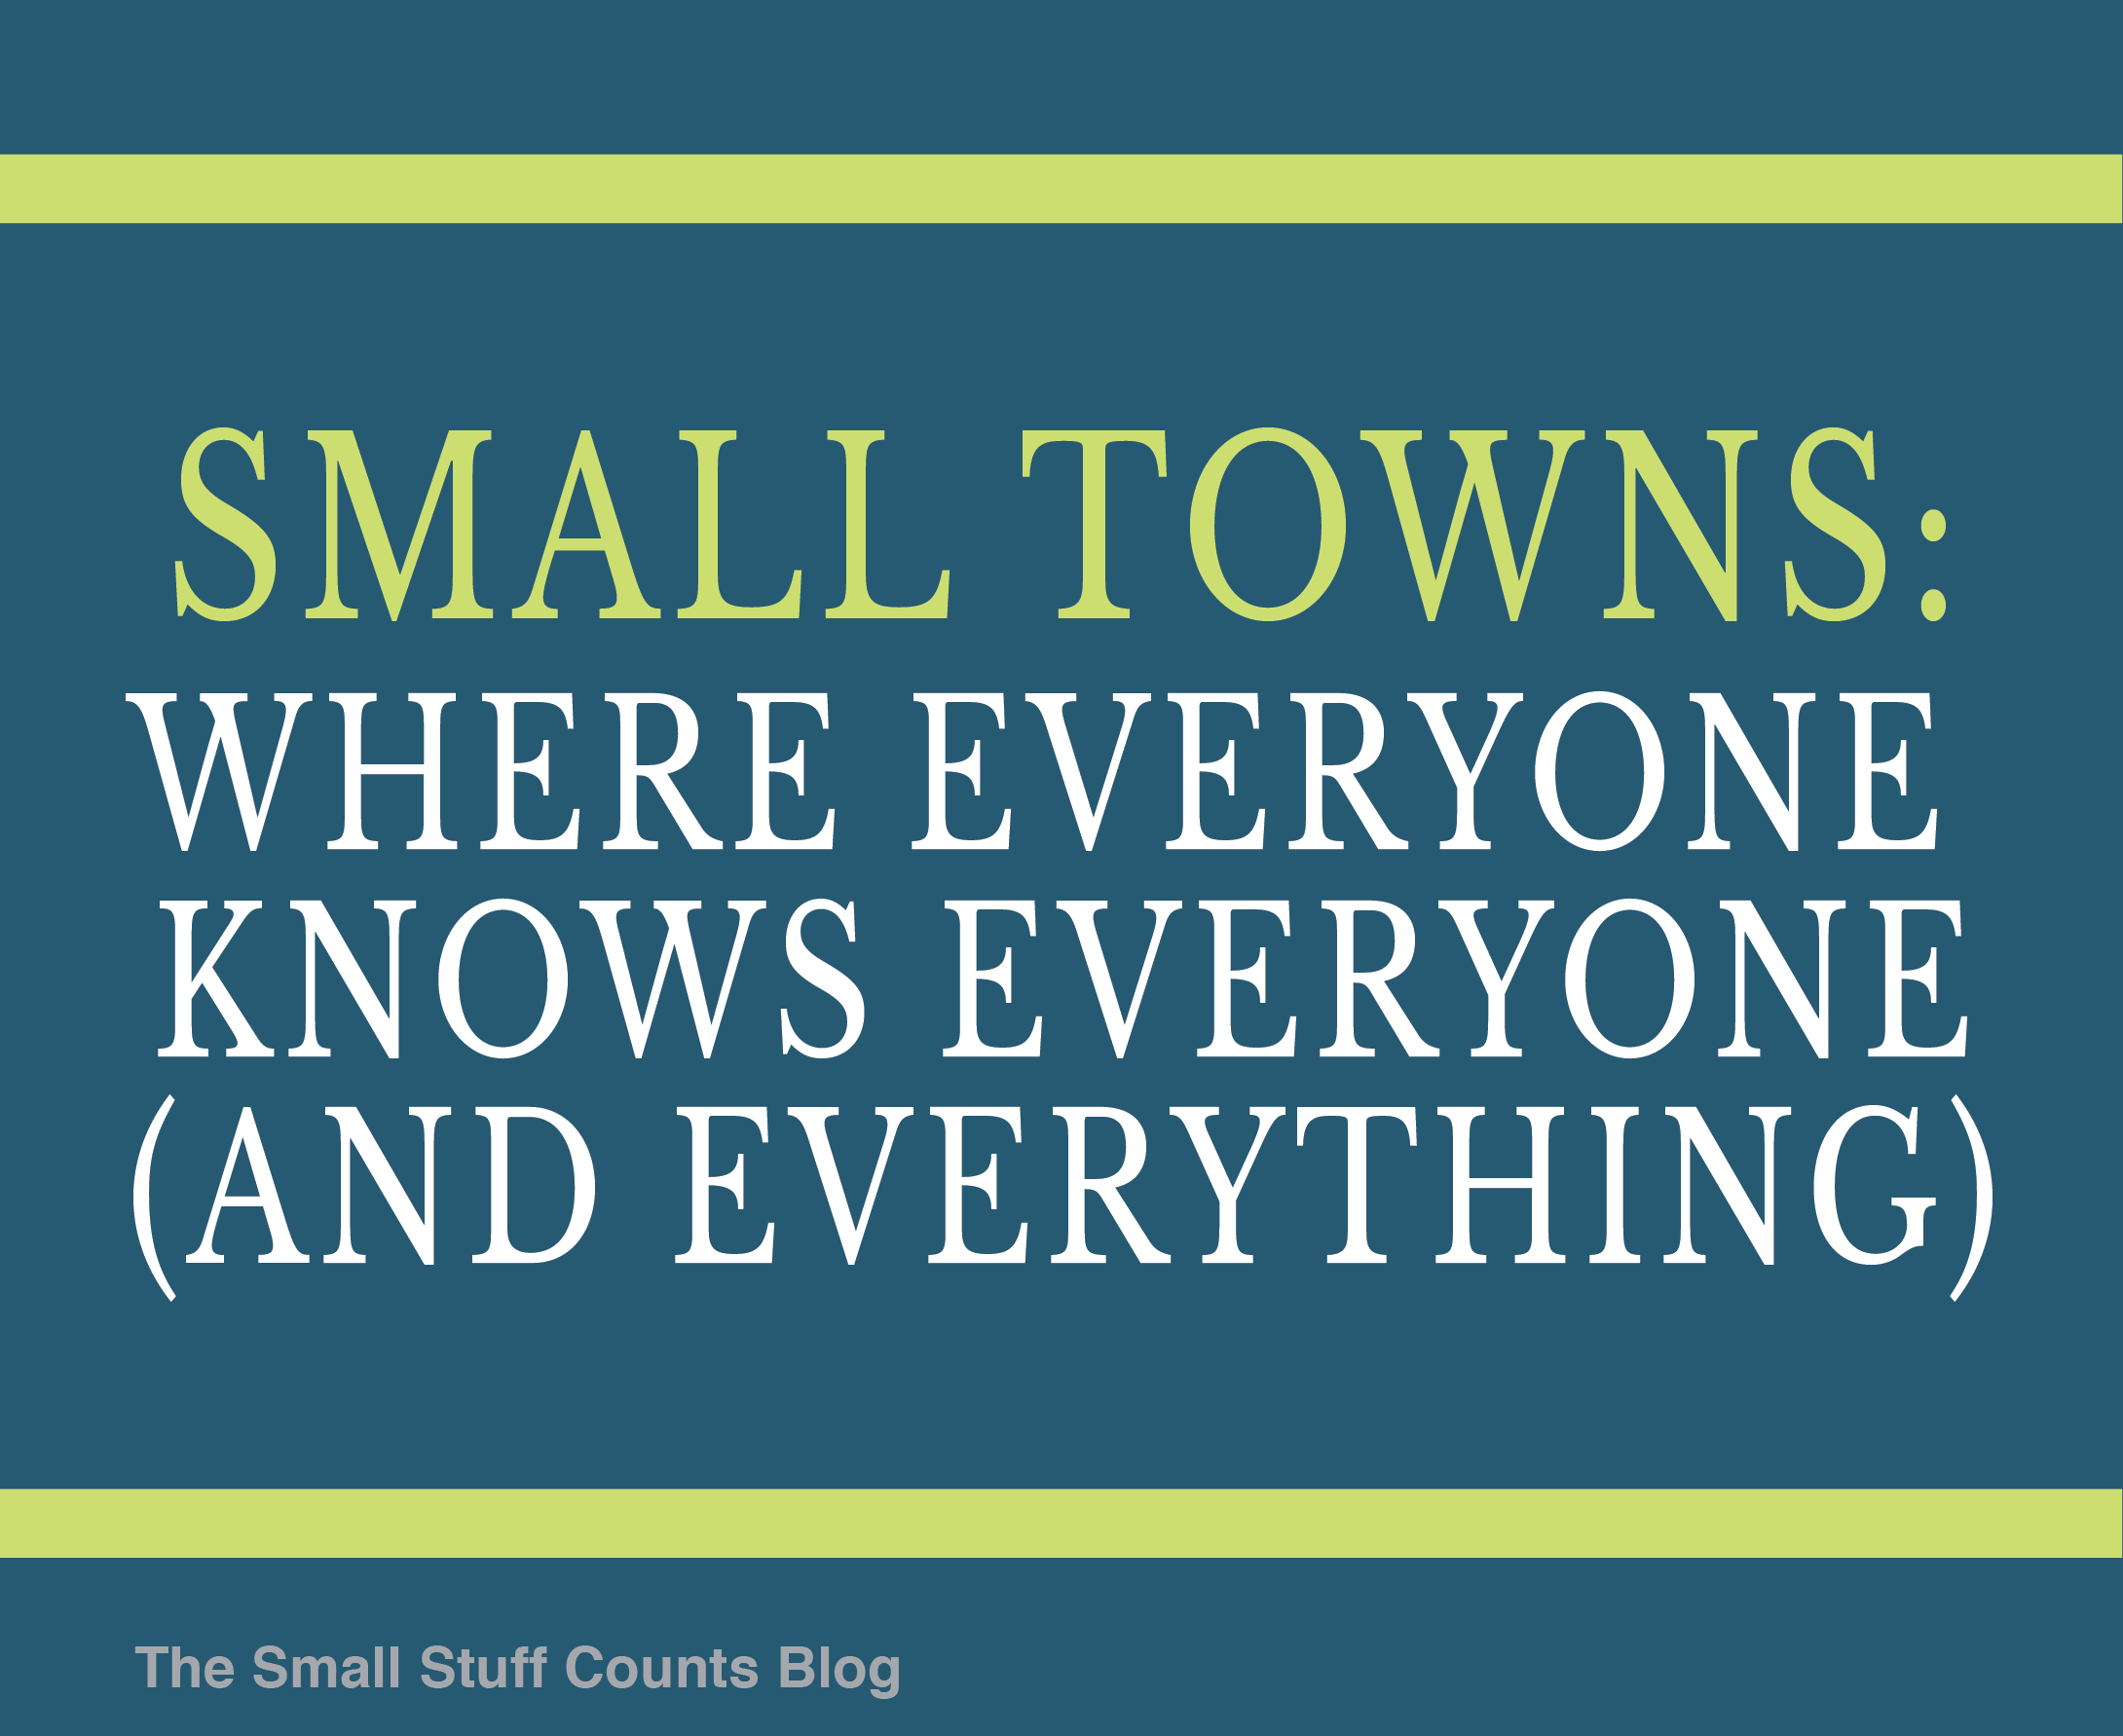 The Small Stuff Counts Small Town Quotes True Words Small Towns